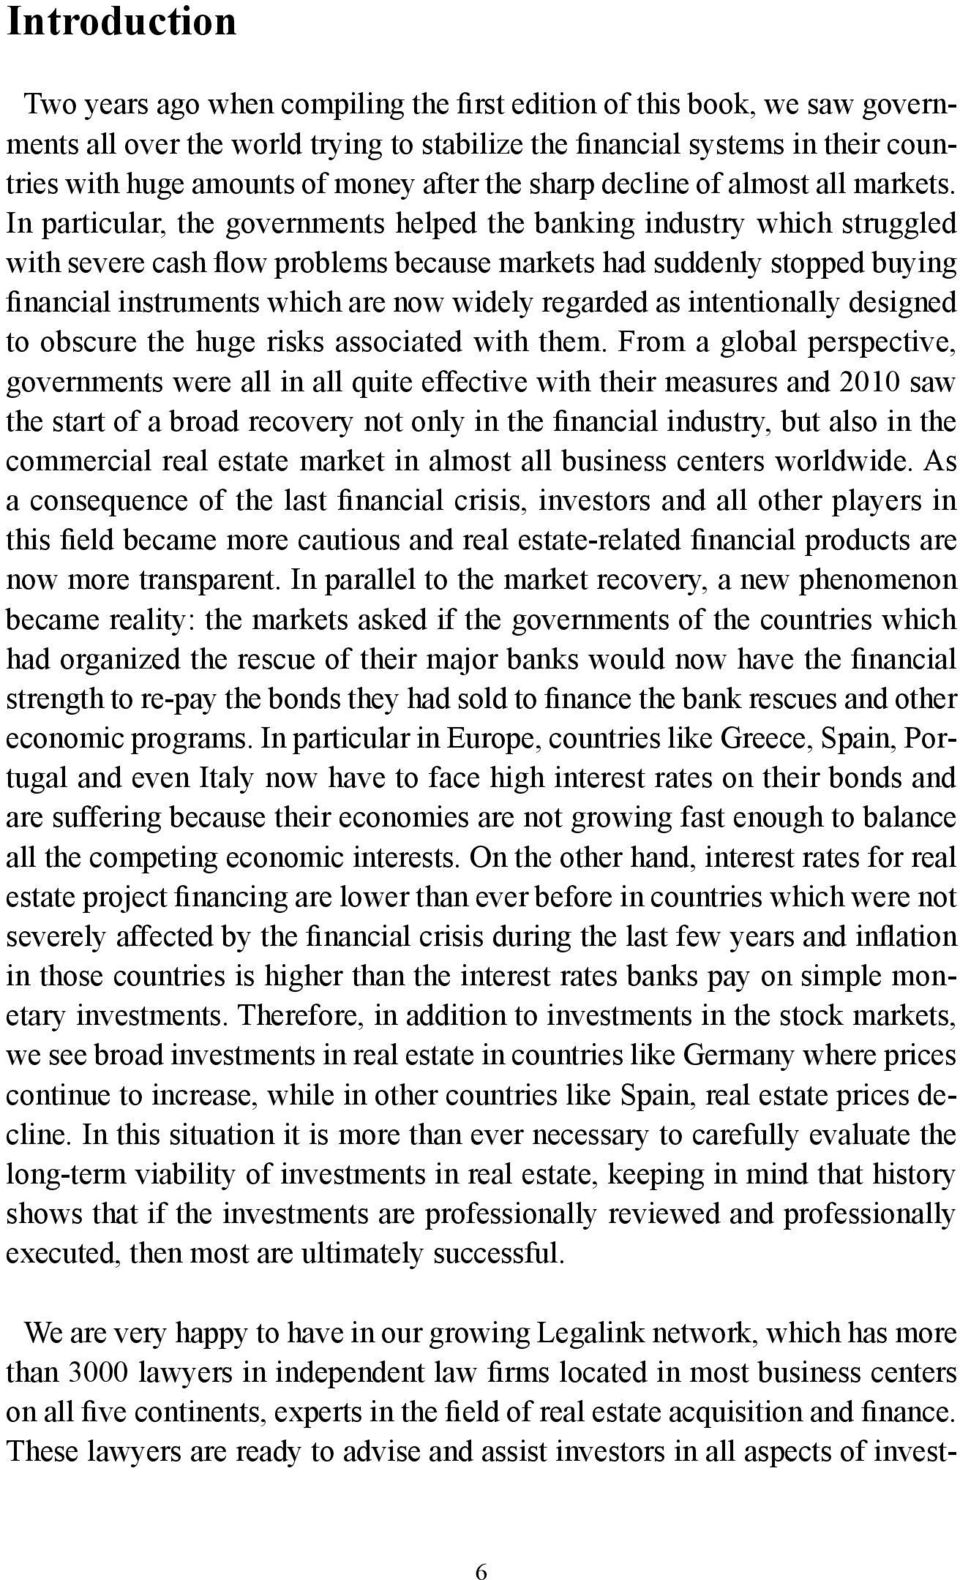 In particular, the governments helped the banking industry which struggled with severe cash flow problems because markets had suddenly stopped buying financial instruments which are now widely